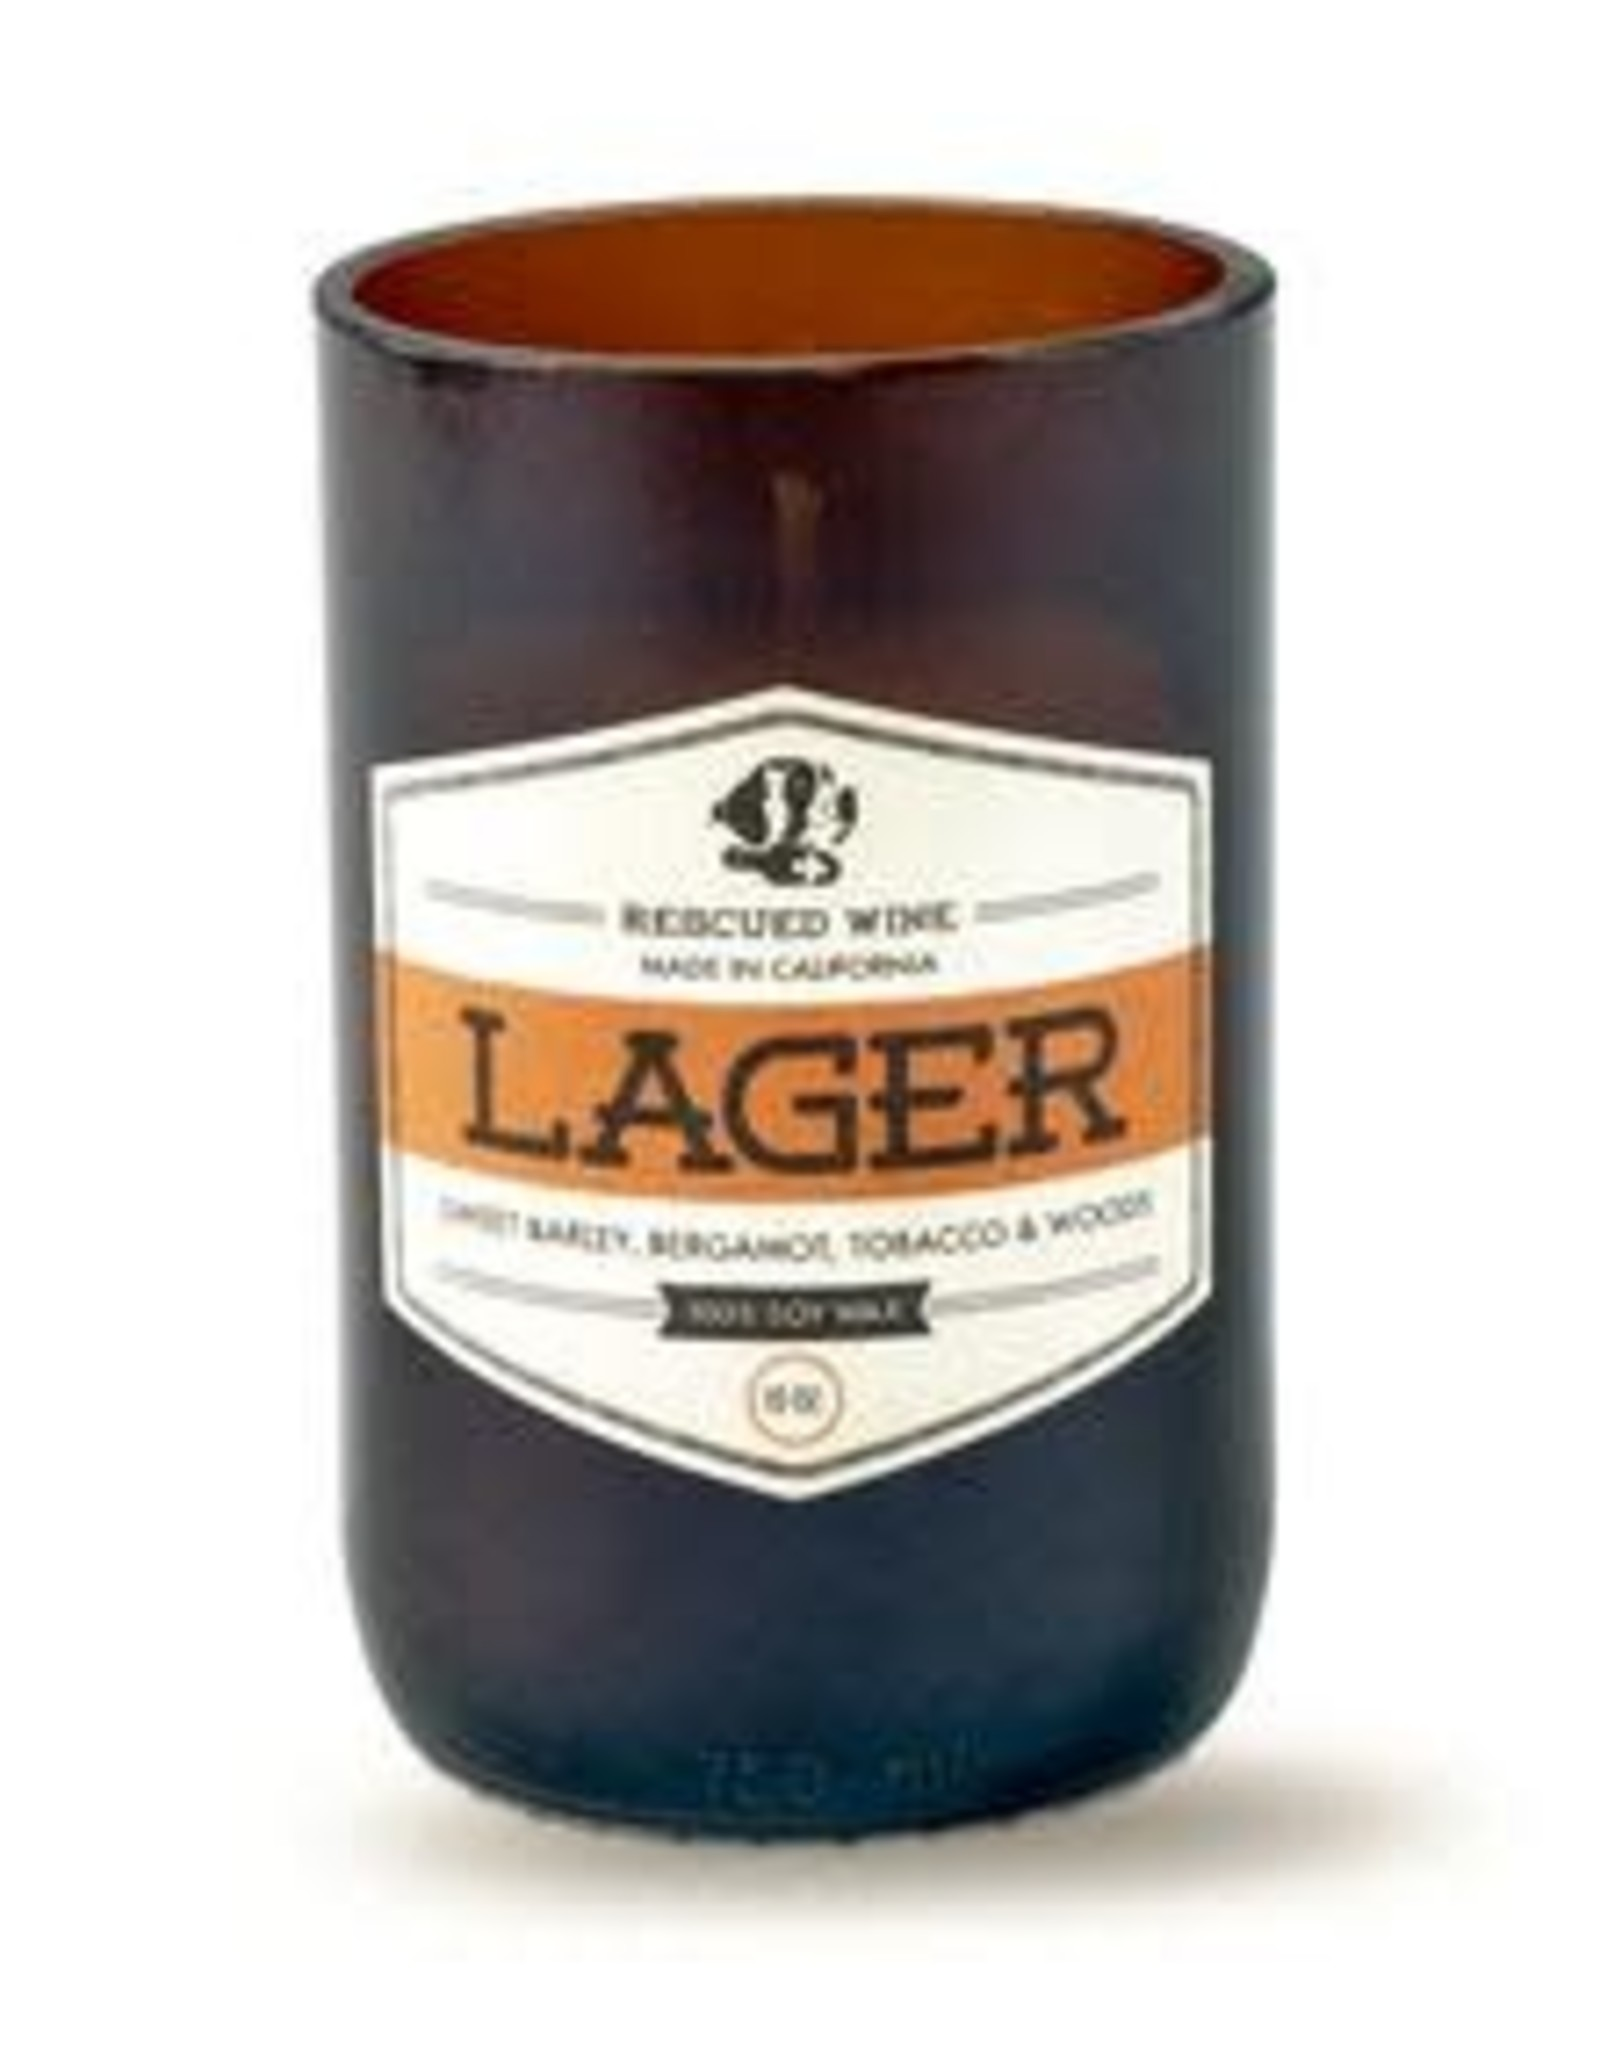 Rescue Candles, Lager